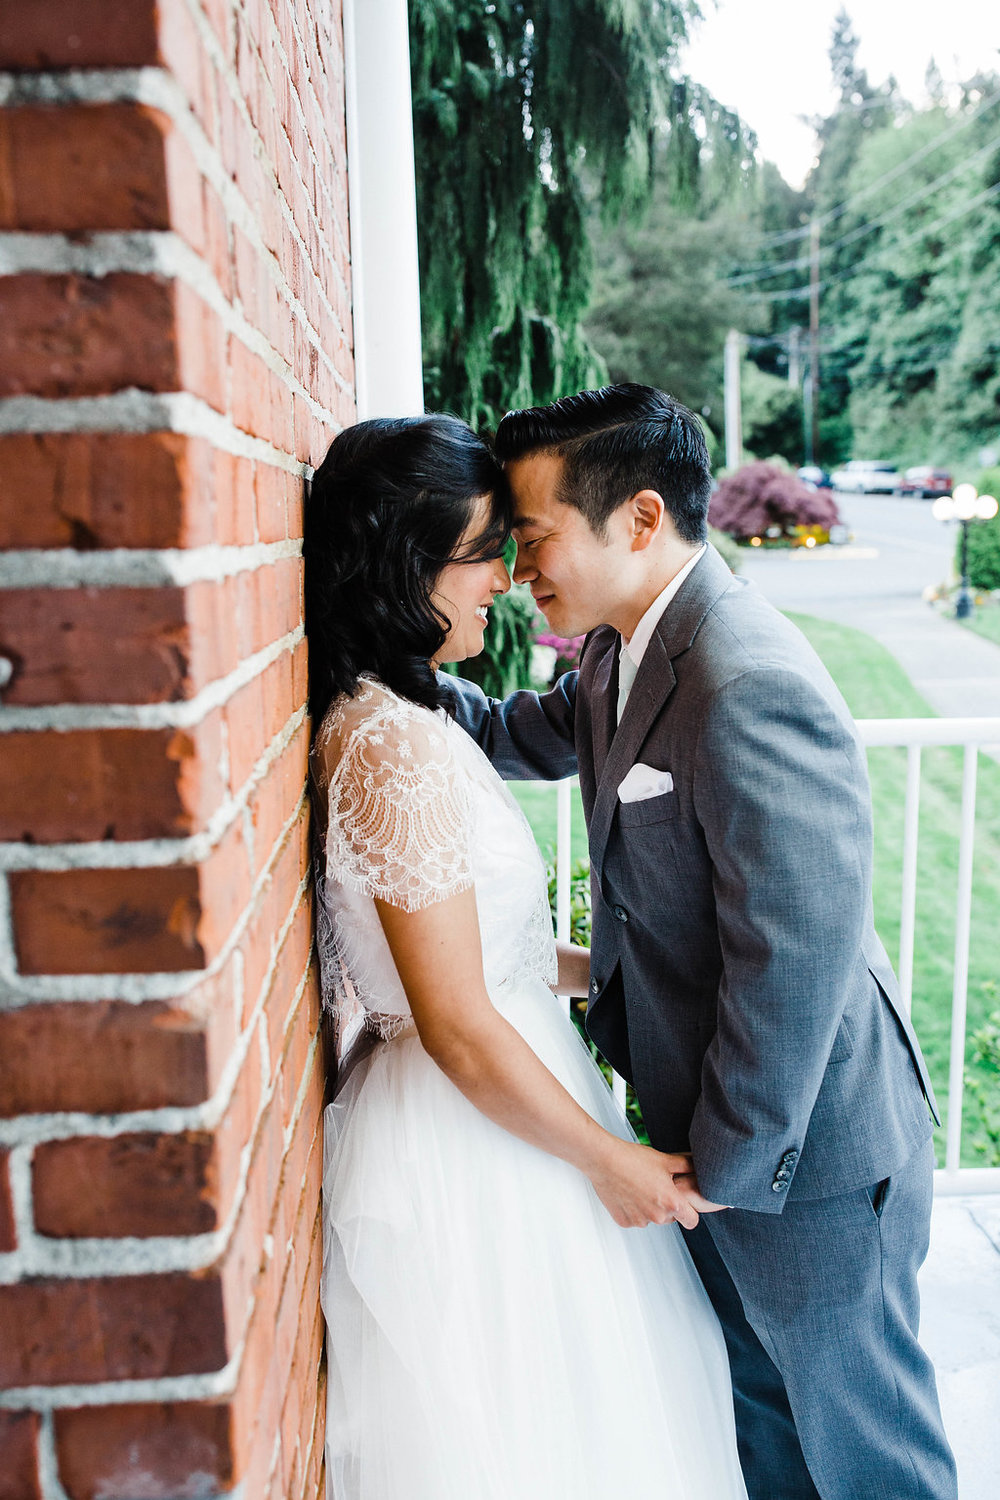 Sarah+Sean_Hollywood_Schoolhouse_wedding_Adina_Preston_Weddings_1082.JPG